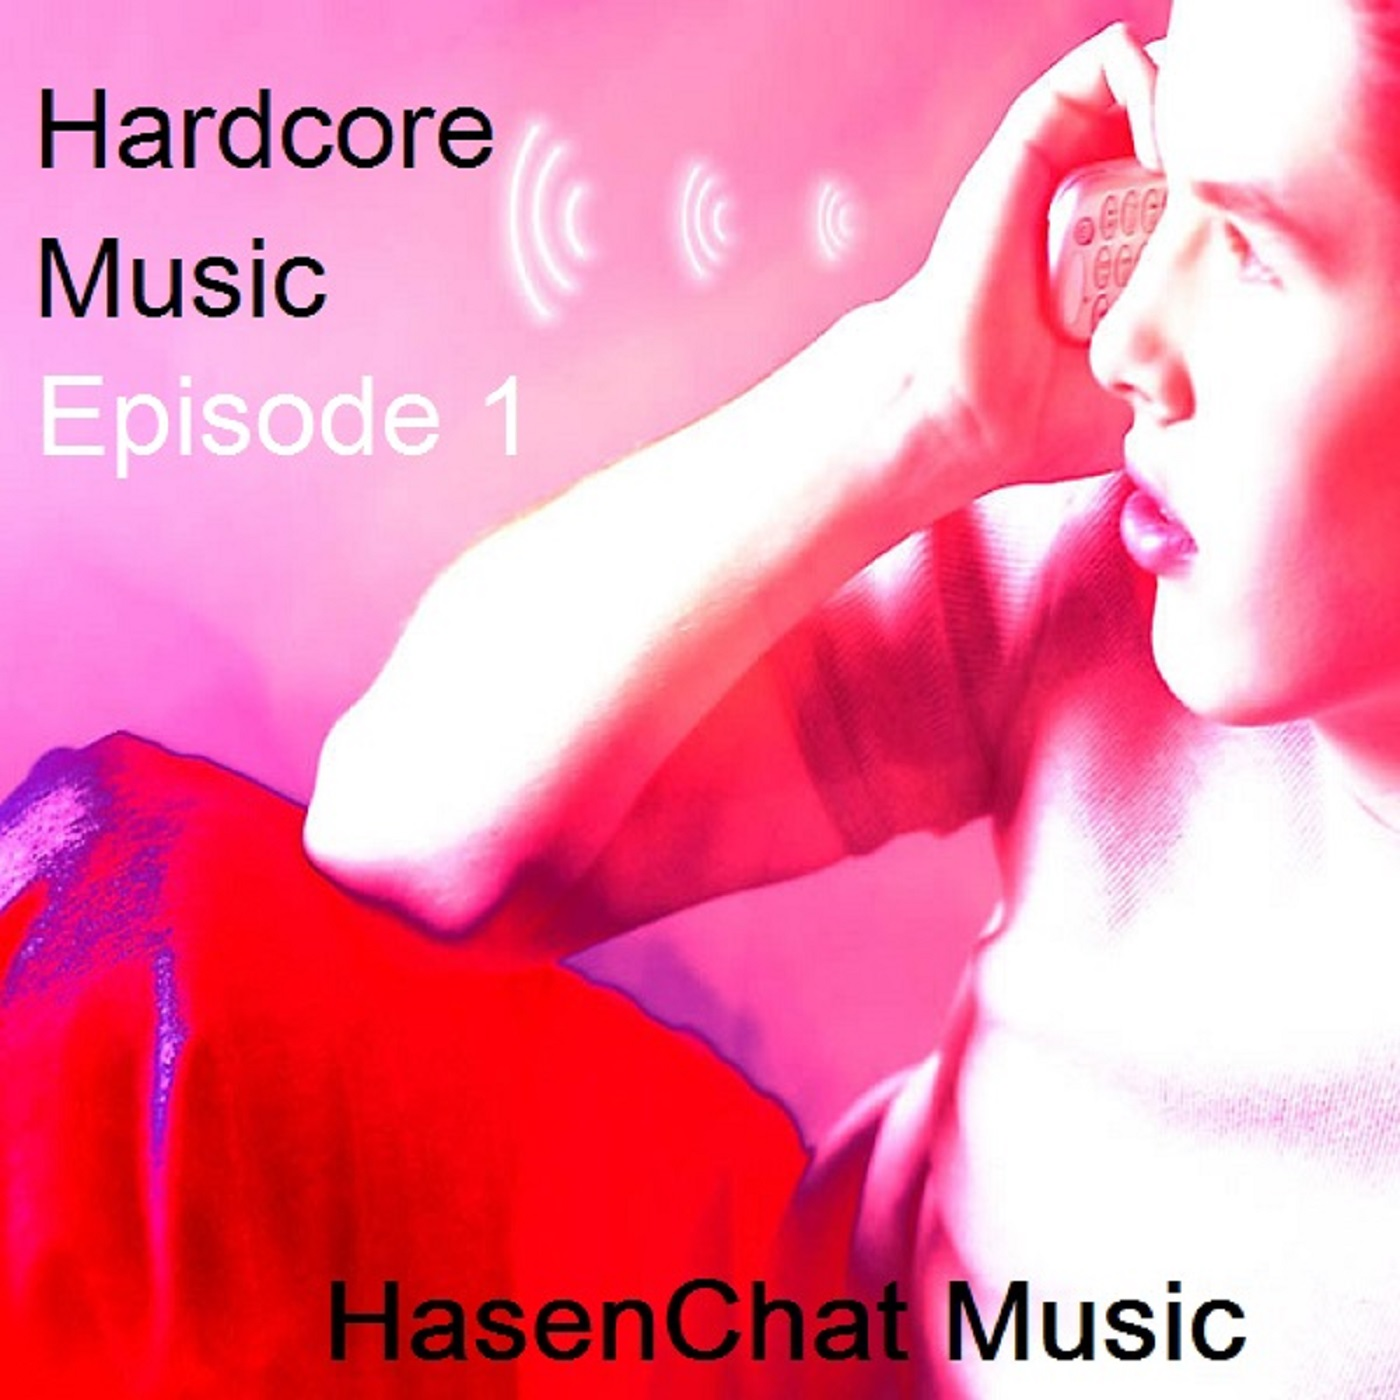 HasenChat Music - Hardcore Music - Episode 1